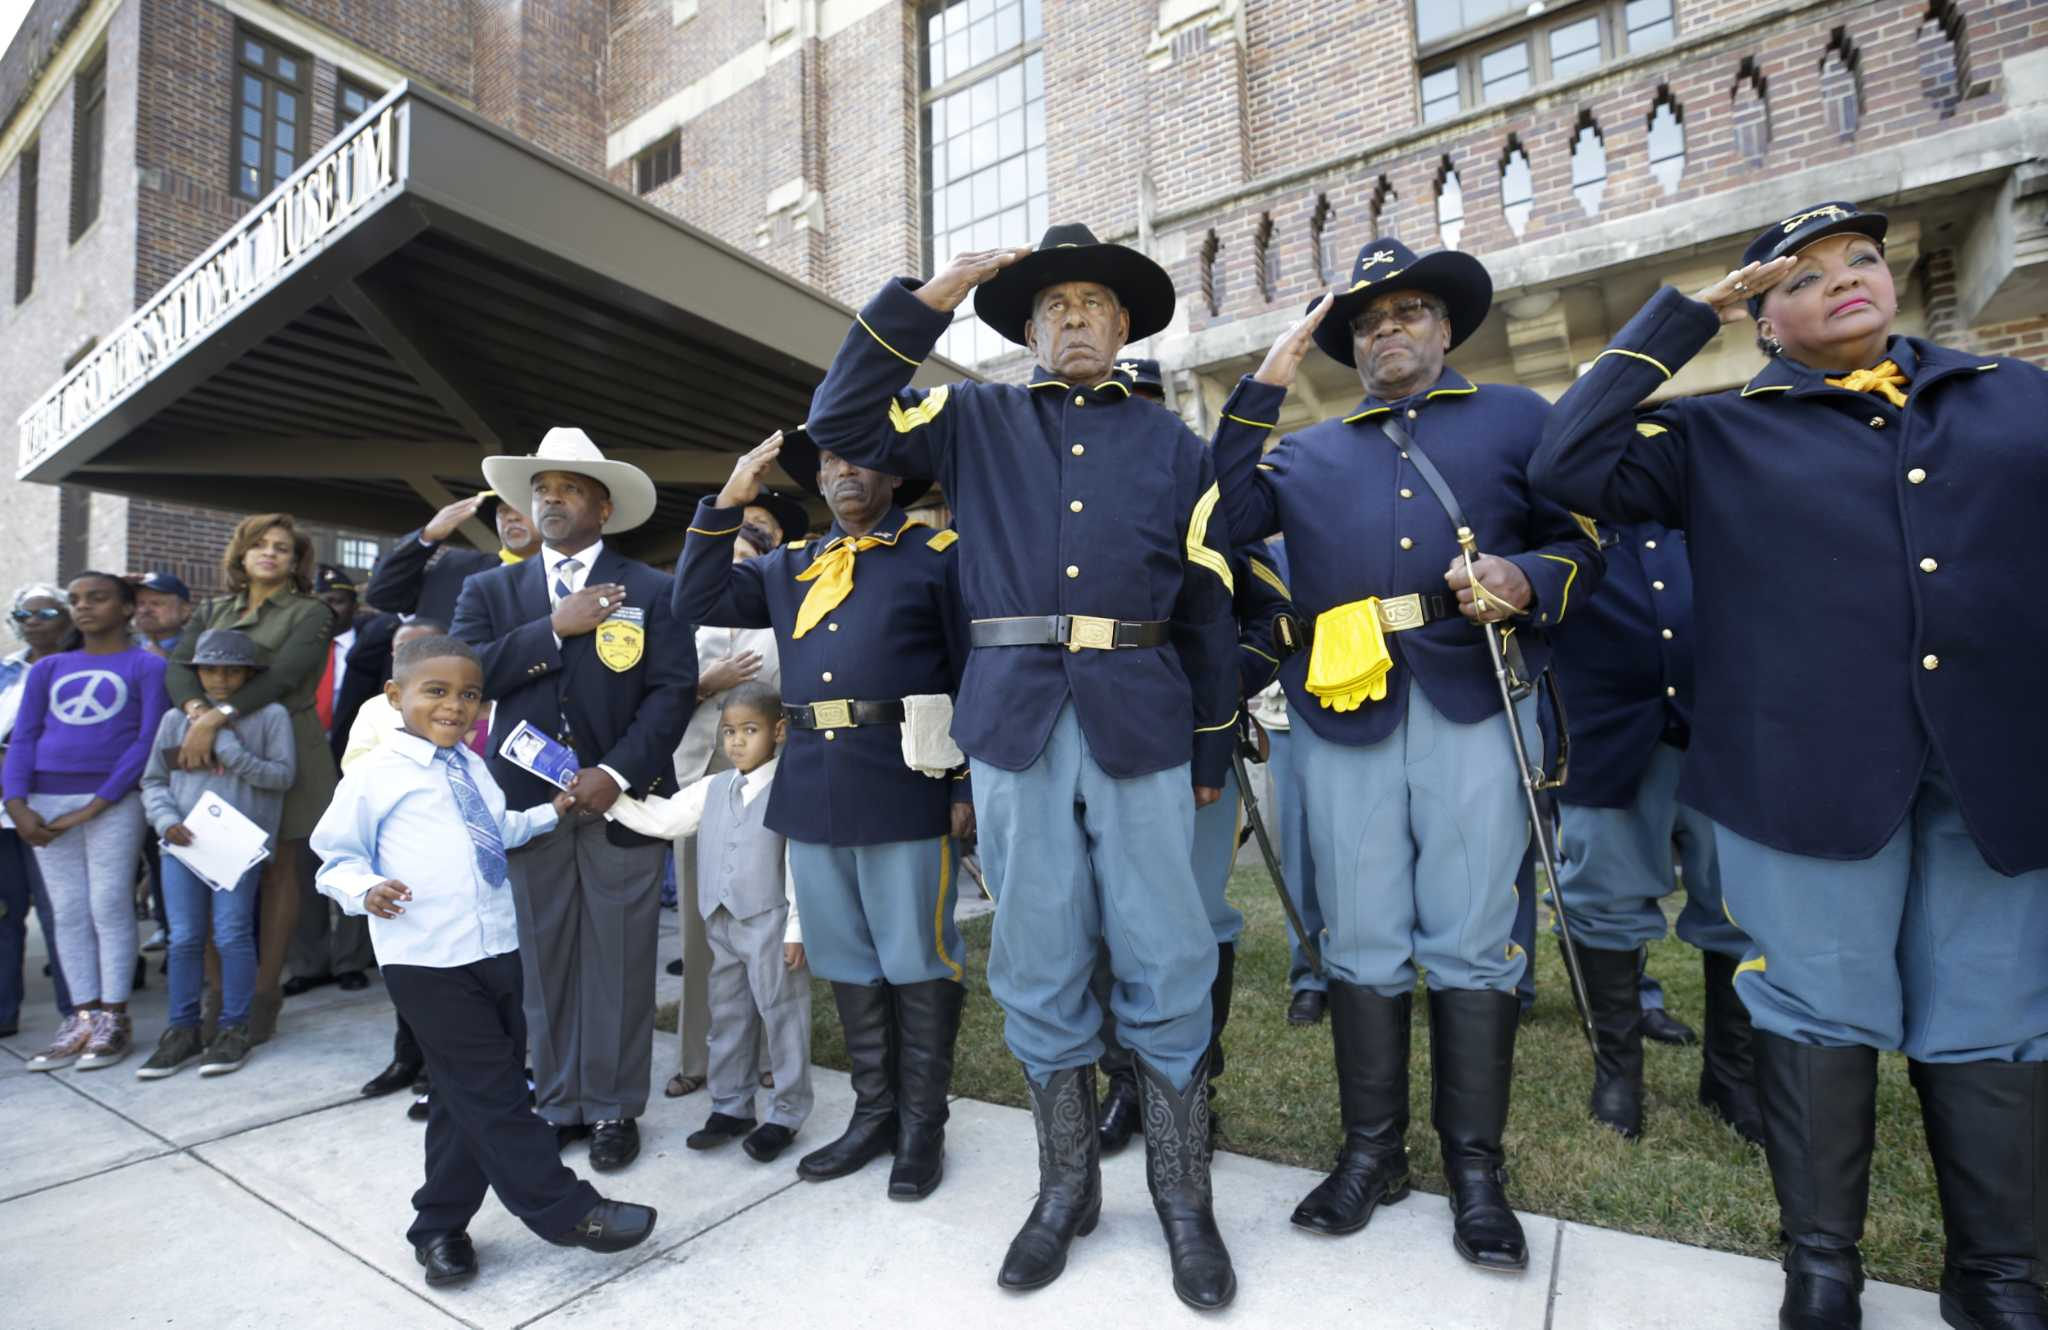 buffalo soldiers museum 20 reviews of buffalo soldiers national museum during the grand opening there were several reenactments that were superb a piece of history for all races to learn about.